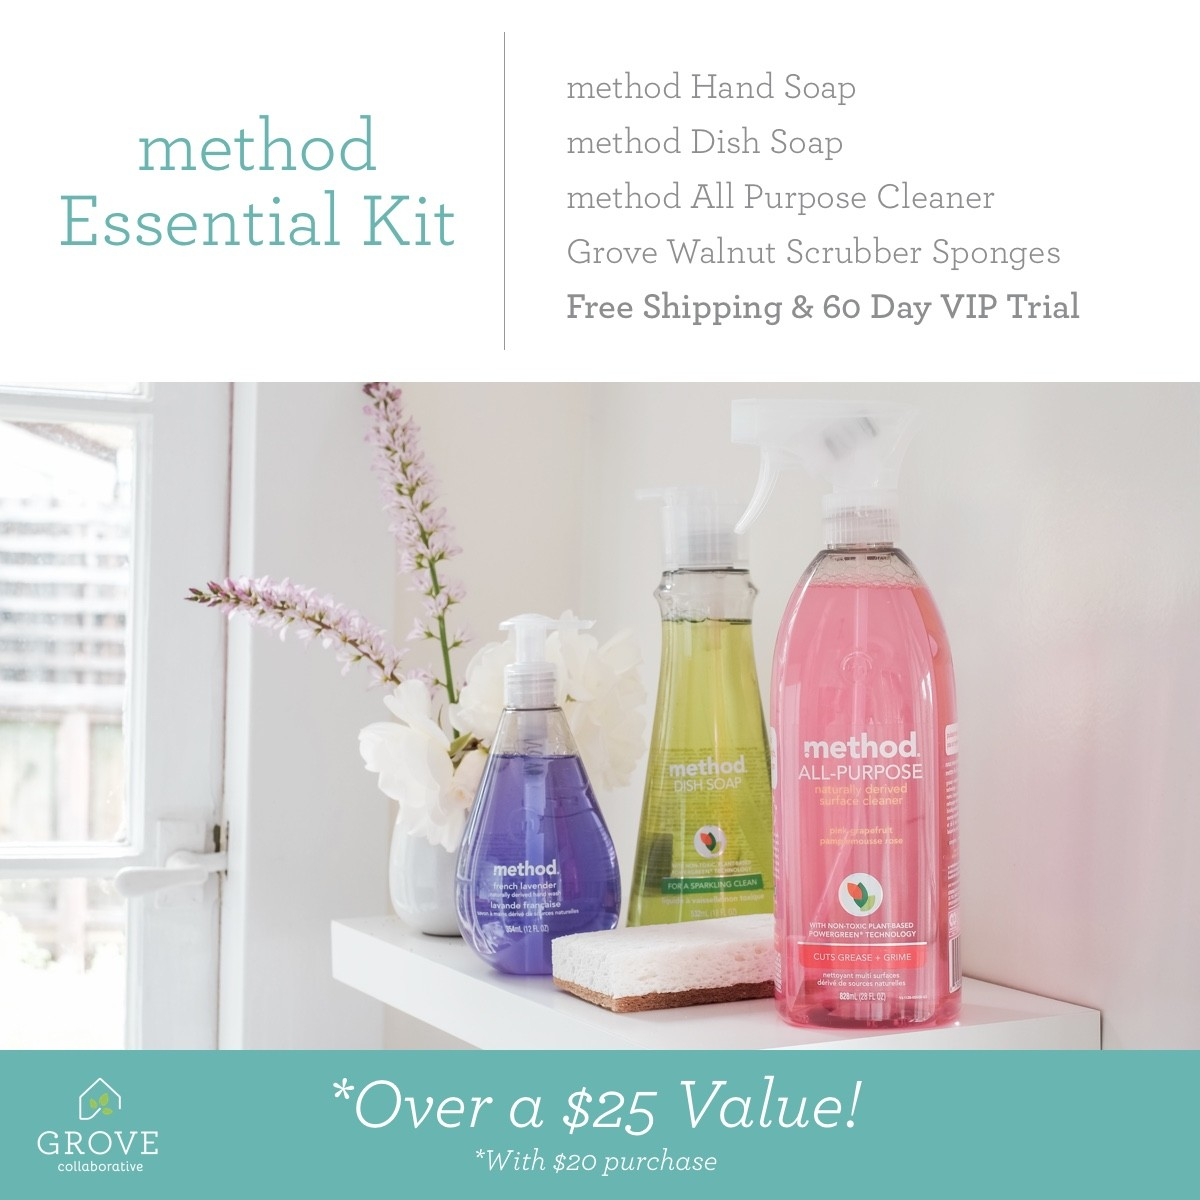 Method Essential Kit from Grove Collaborative